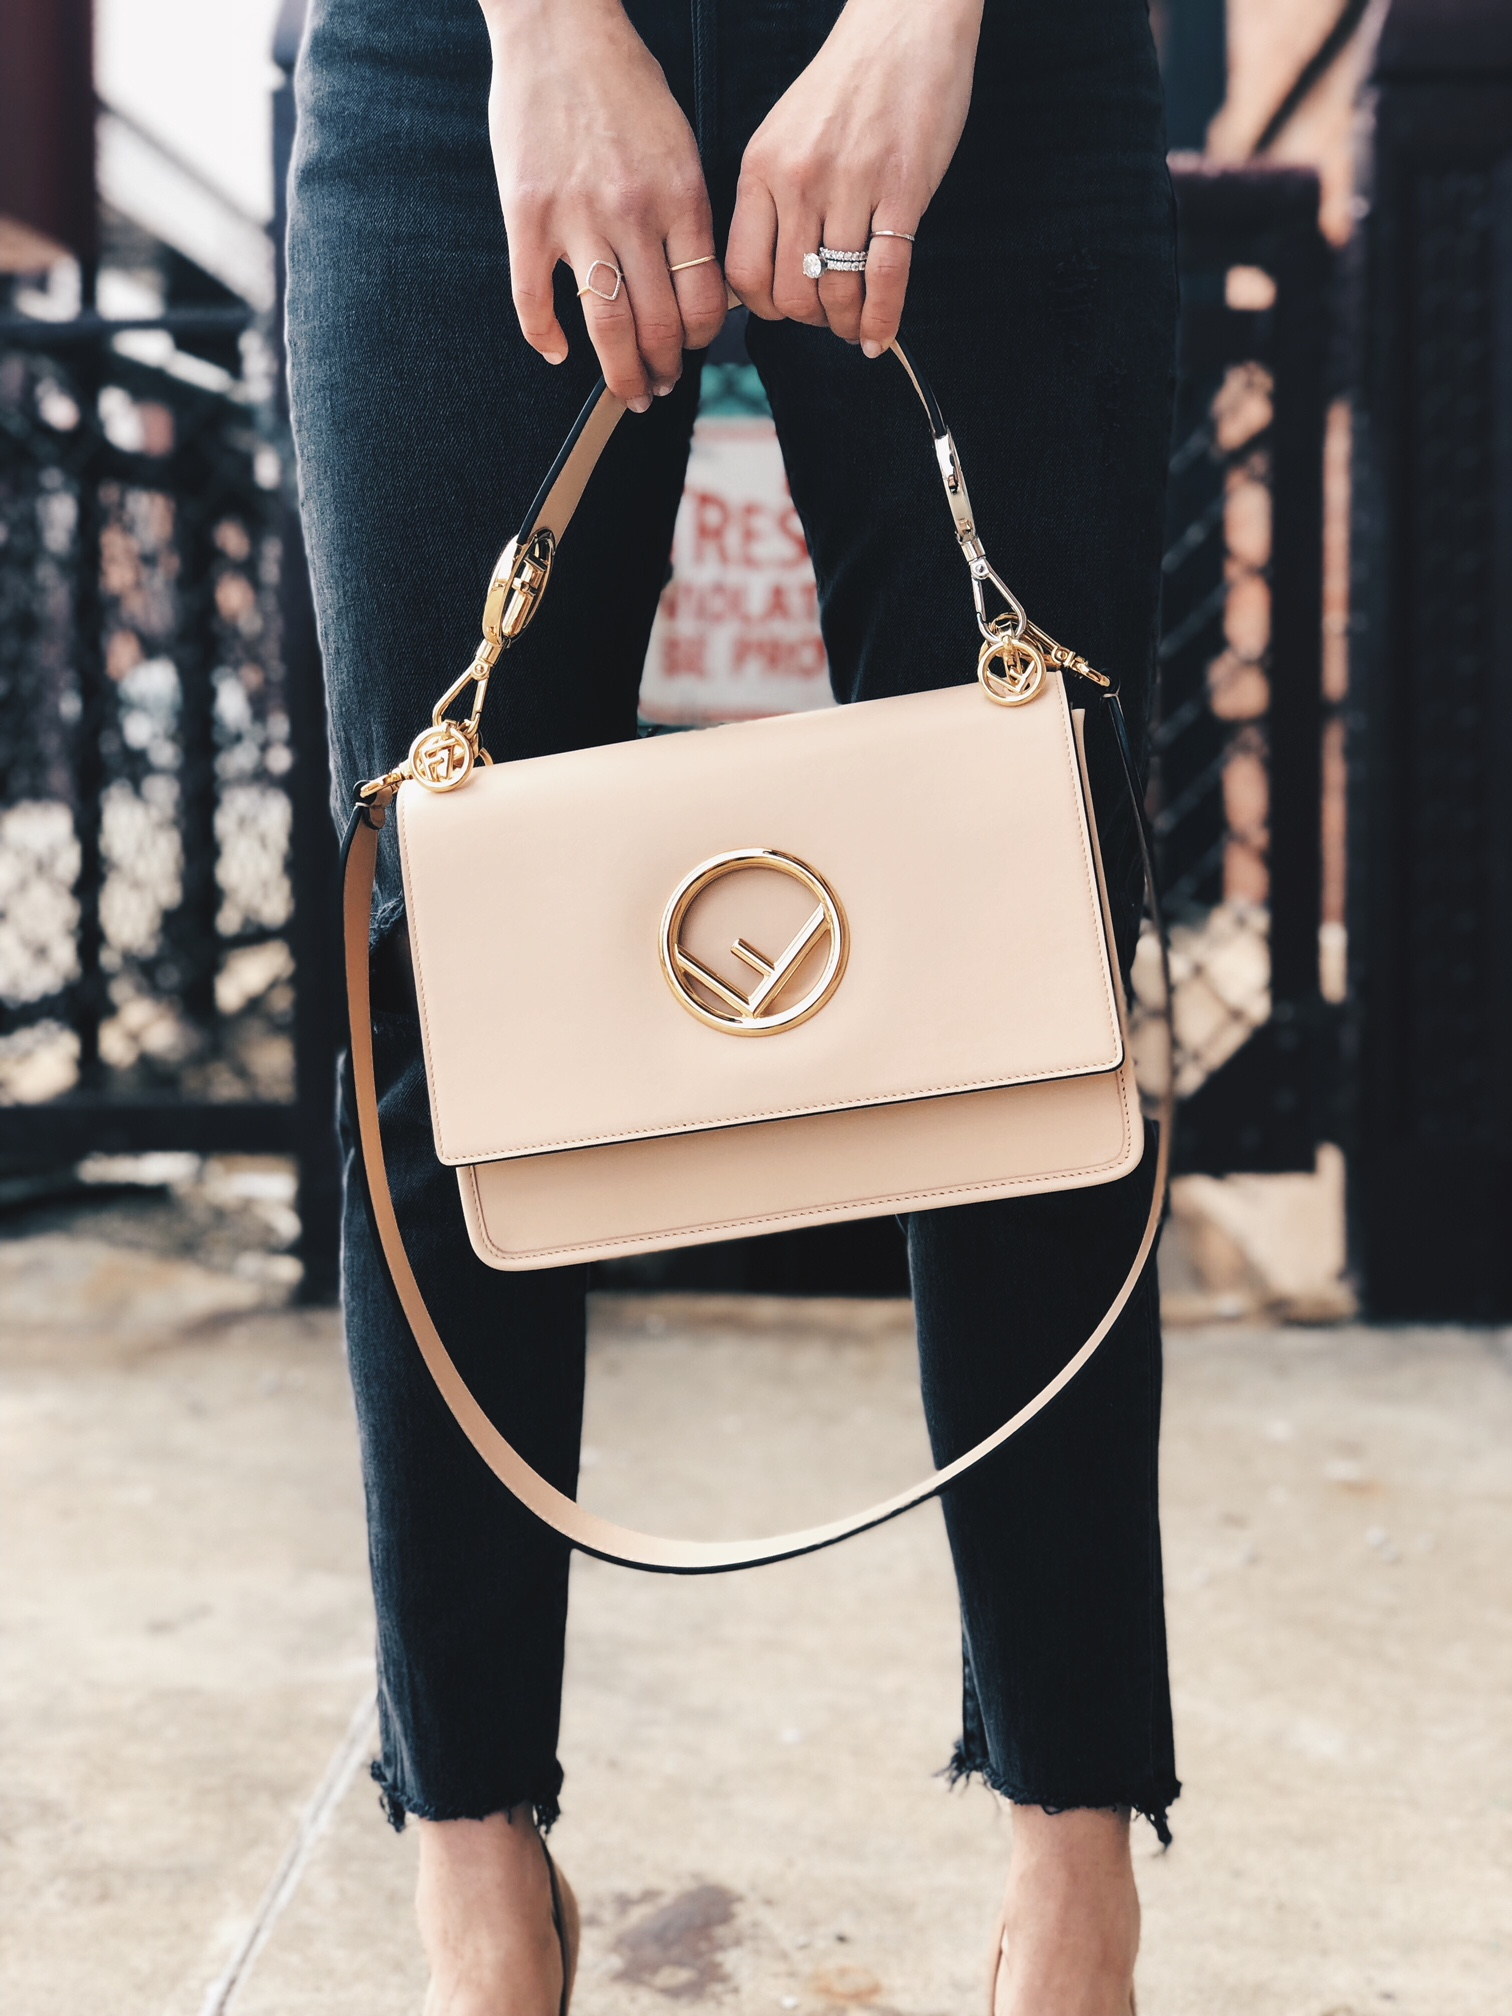 239f21eef535 How to buy a preowned designer handbag - But First Koffee